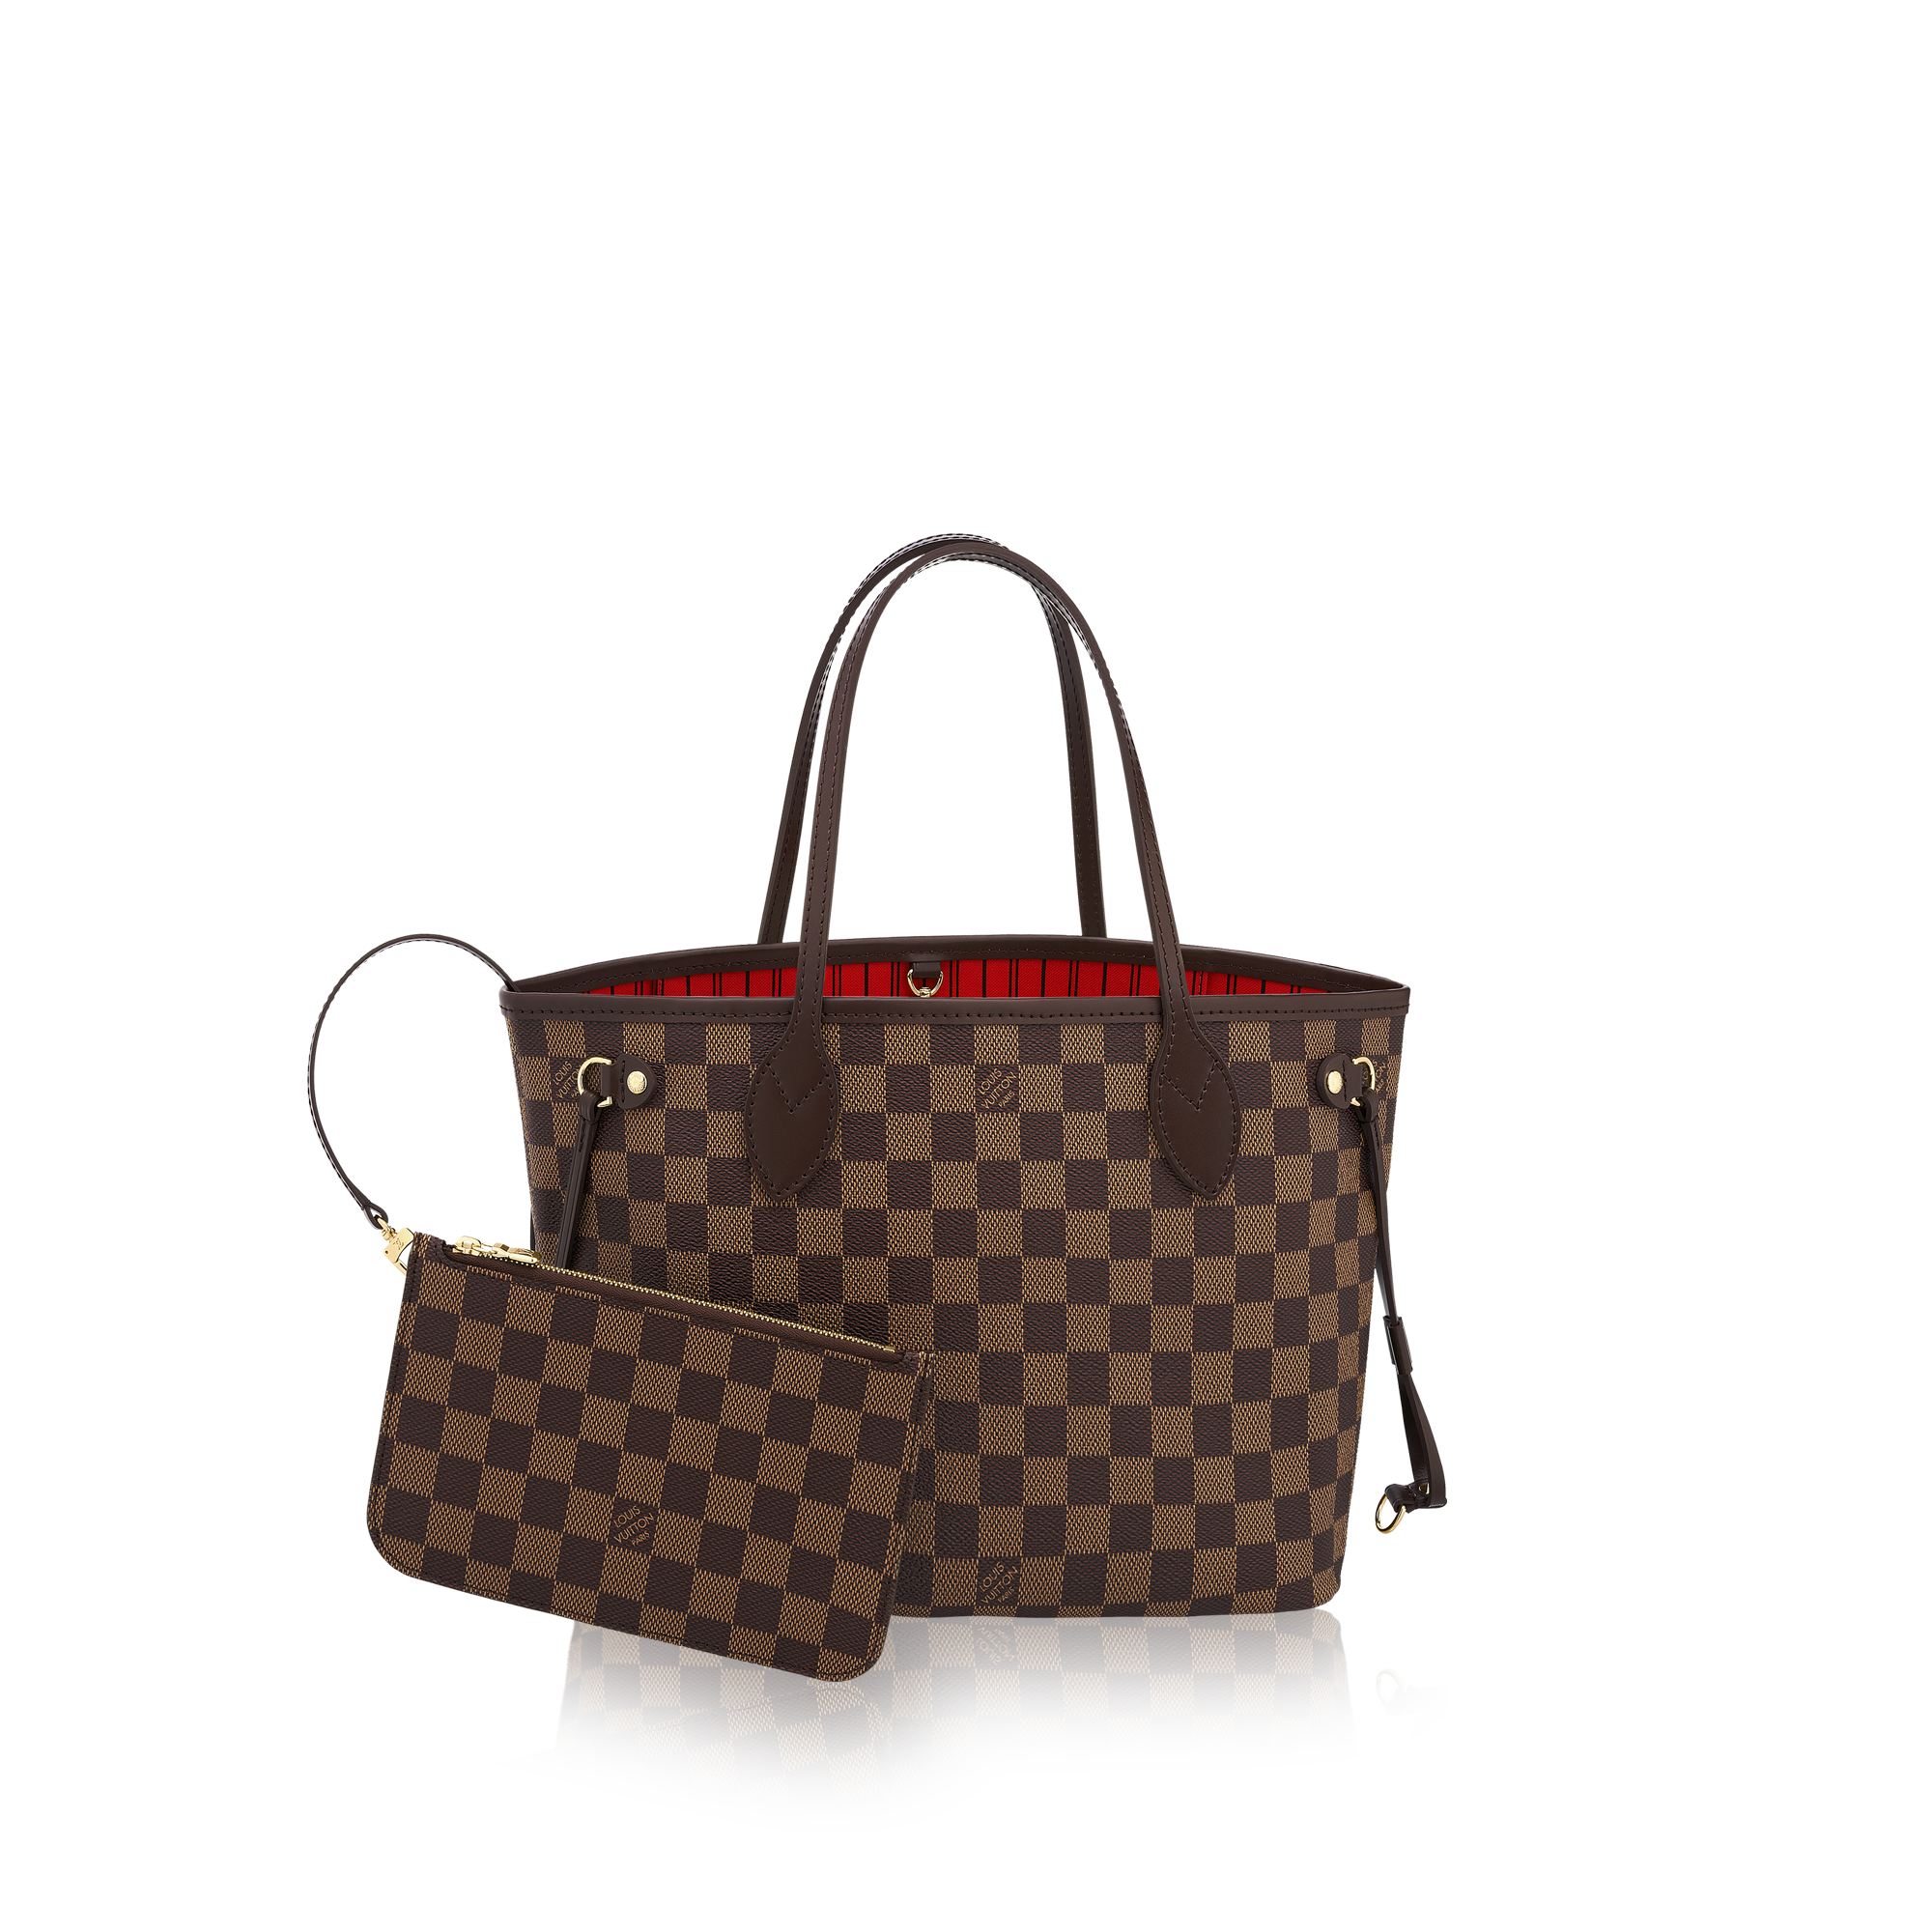 Neverfull PM LG Damier Ebene via Louis Vuitton  b450758db824e